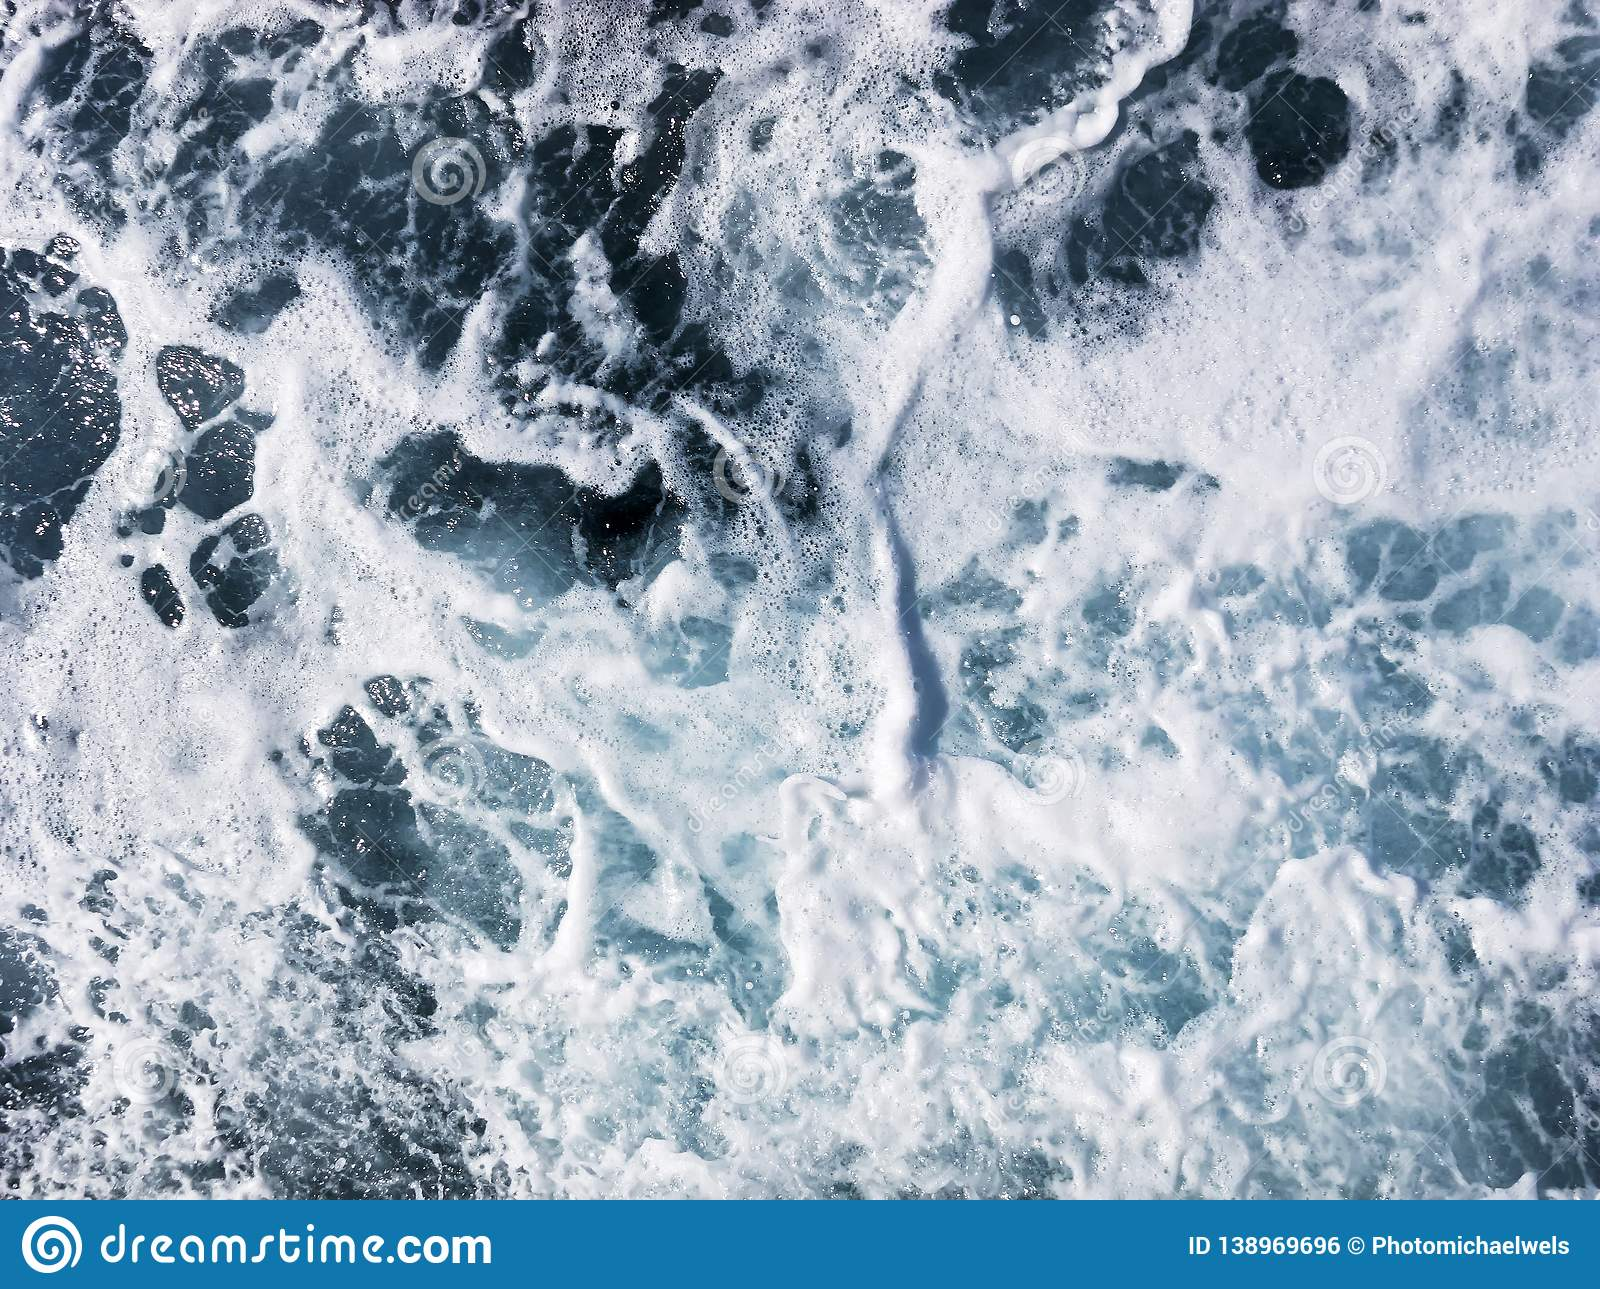 Close-up photo of seawater in the ocean